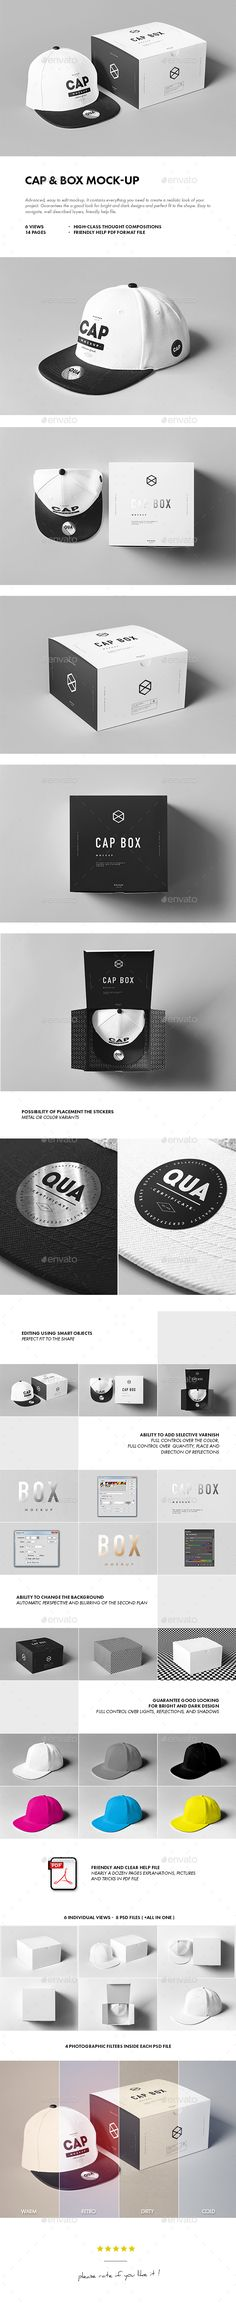 Cap & Box Mock-up https://graphicriver.net/item/cap-box-mockup/18861574?s_rank=19&ref=7h10